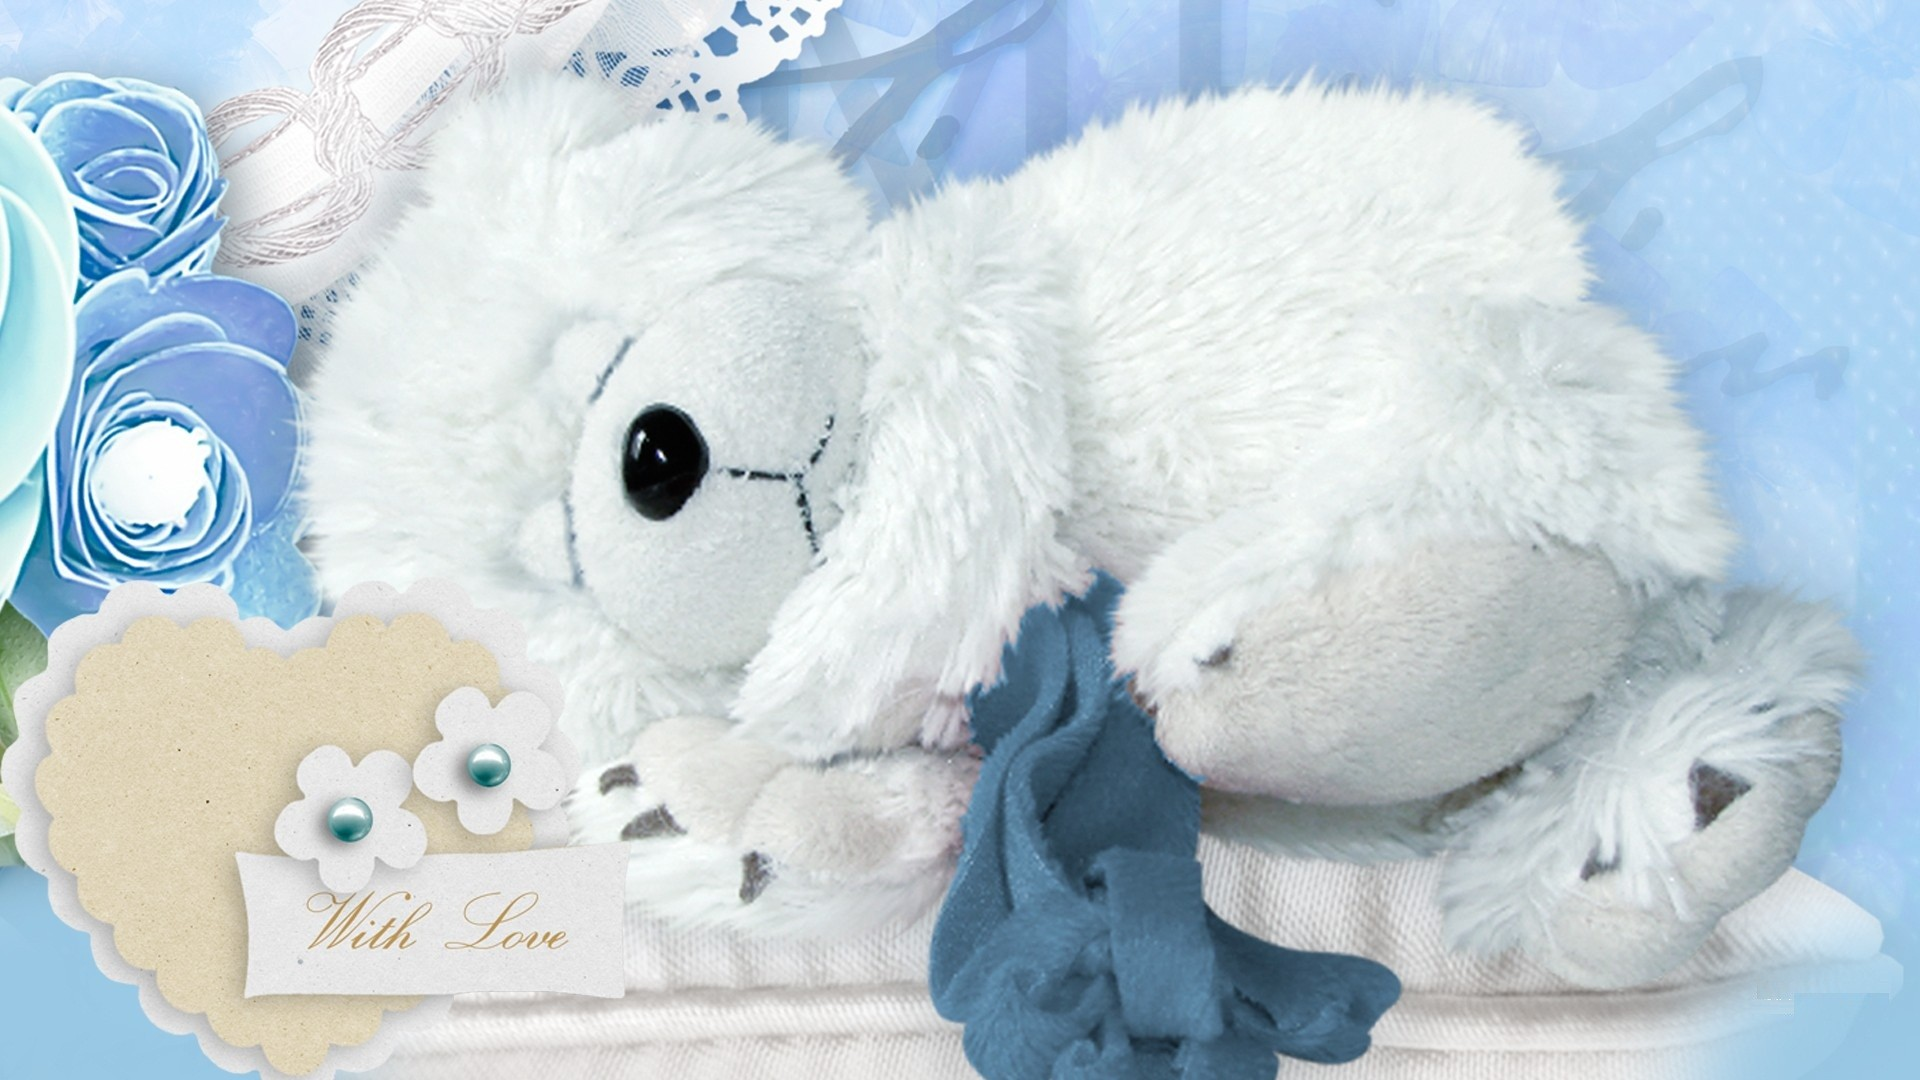 Teddy Bear Wallpaper 1600×1000 Taddy Bear Image Wallpapers (58 Wallpapers)  | Adorable